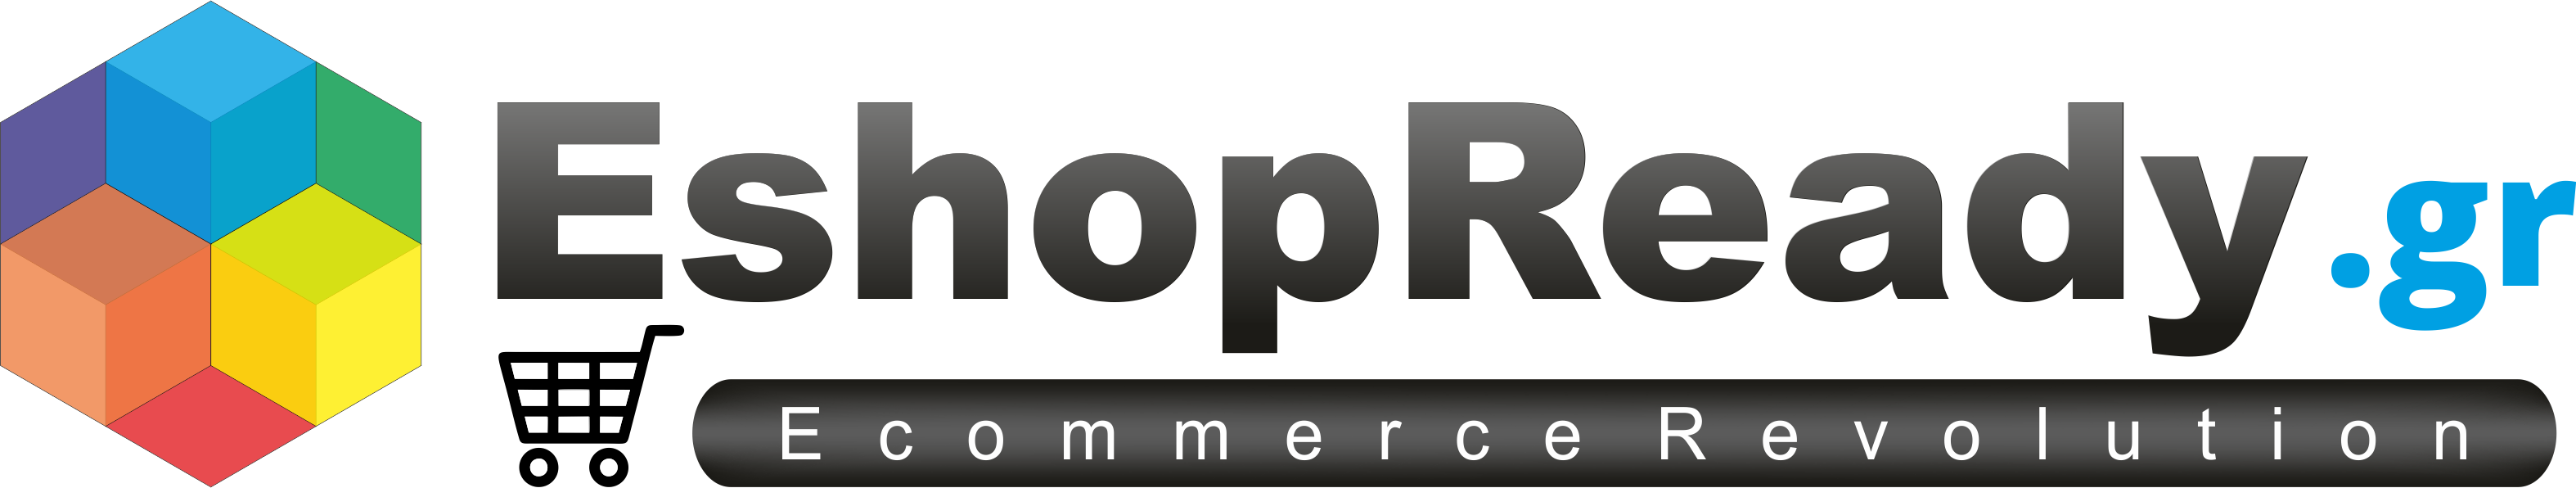 eshopready  E-Commerce Revolution